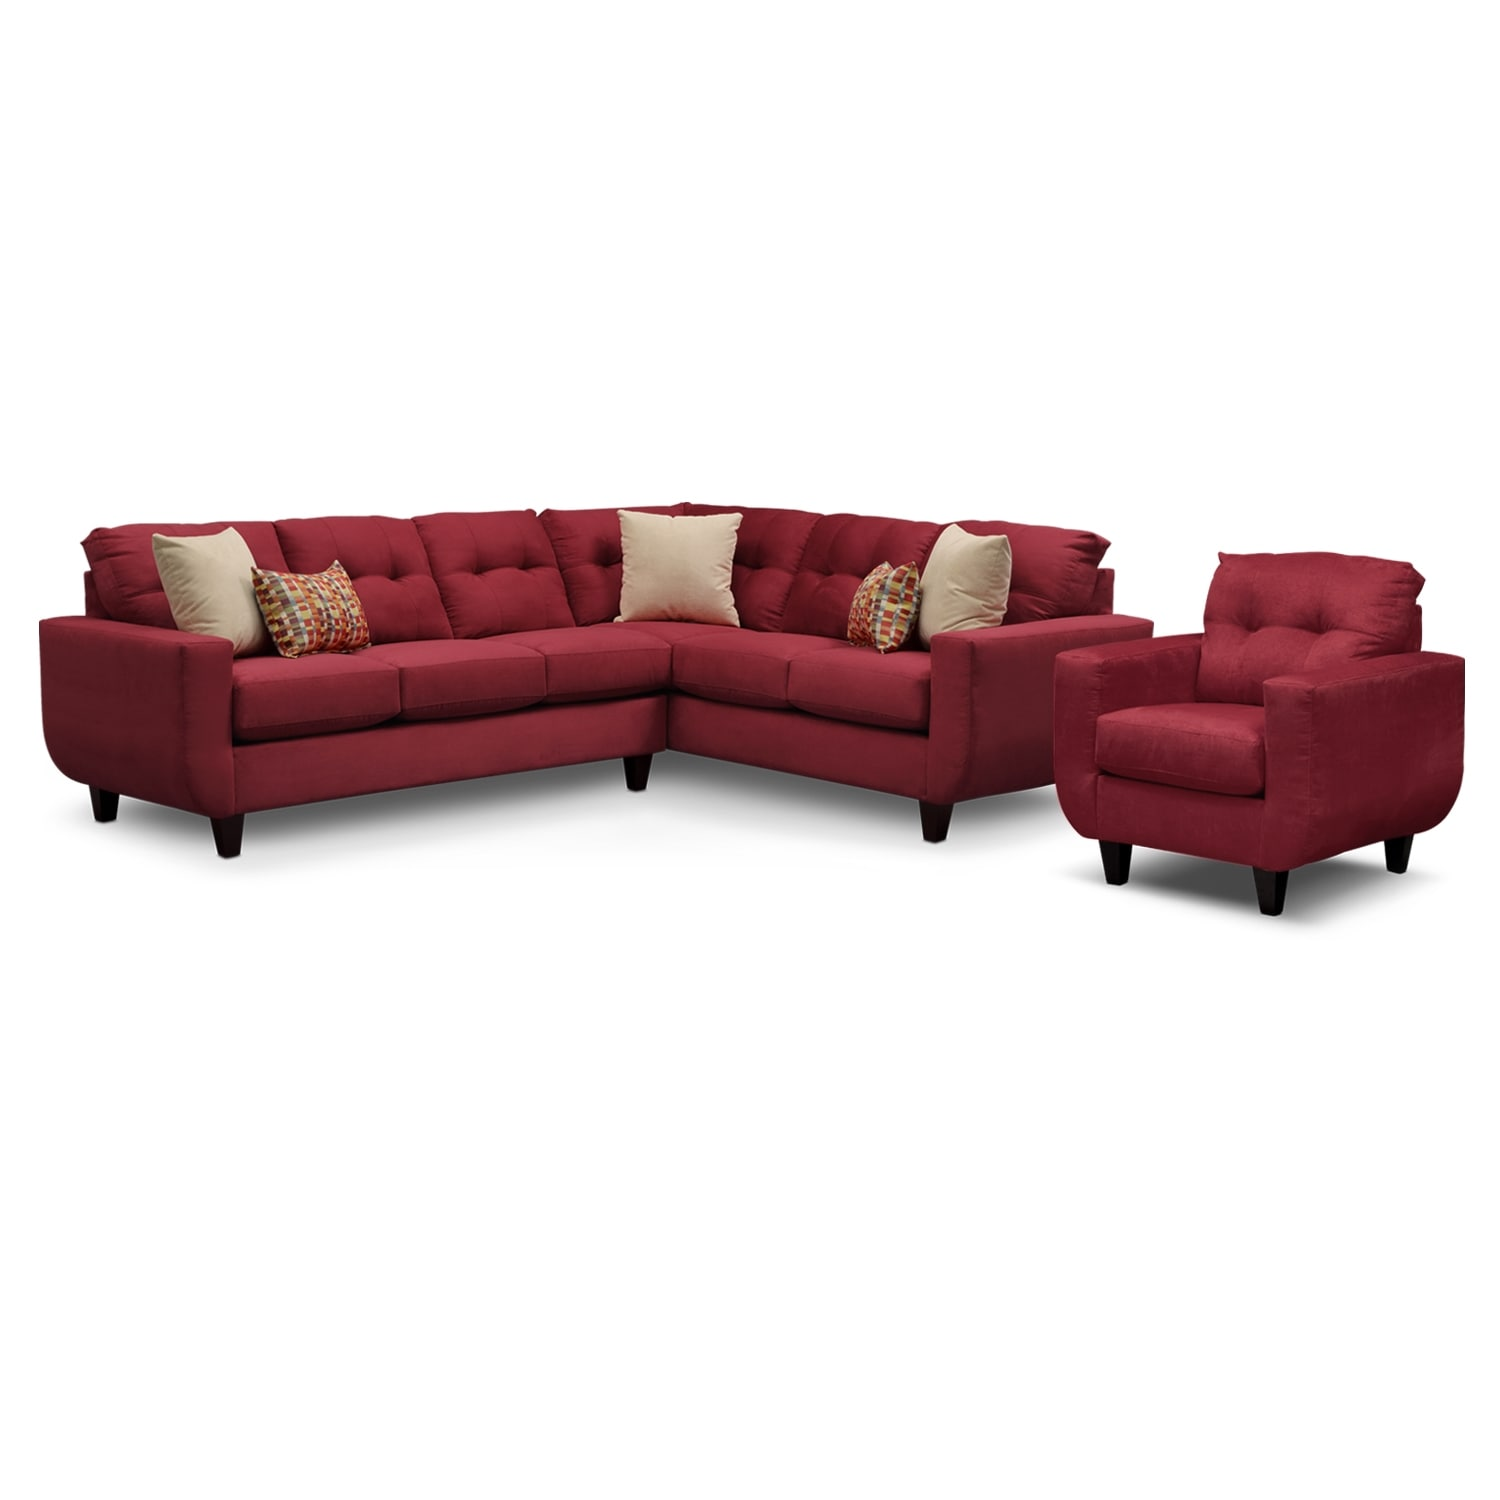 West Village 2-Piece Sectional and Chair Set - Red